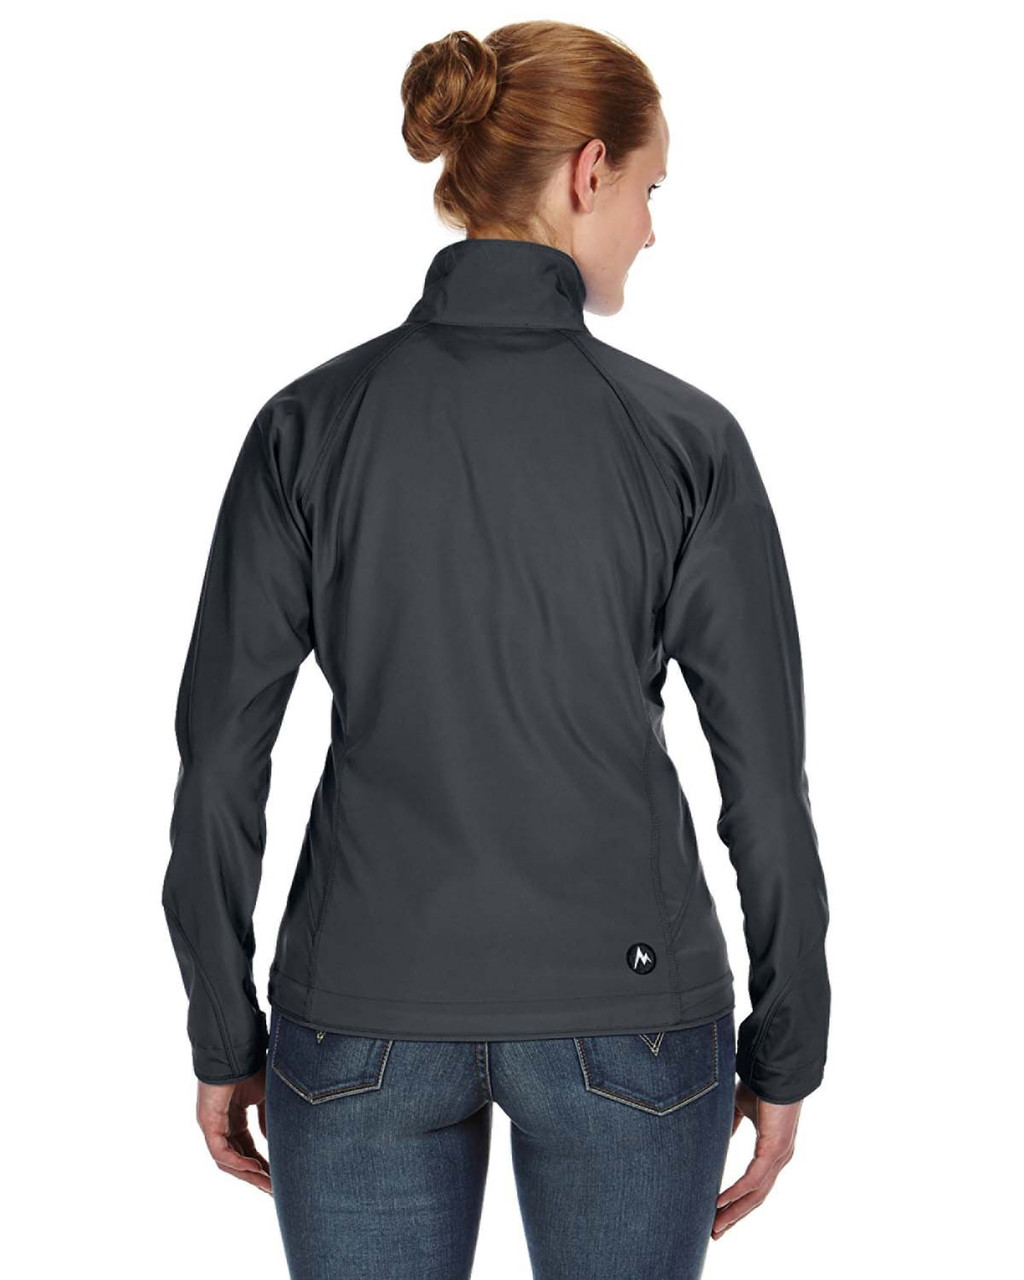 Dark Pewter - 8587 Marmot Ladies' Levity Jacket | BlankClothing.ca